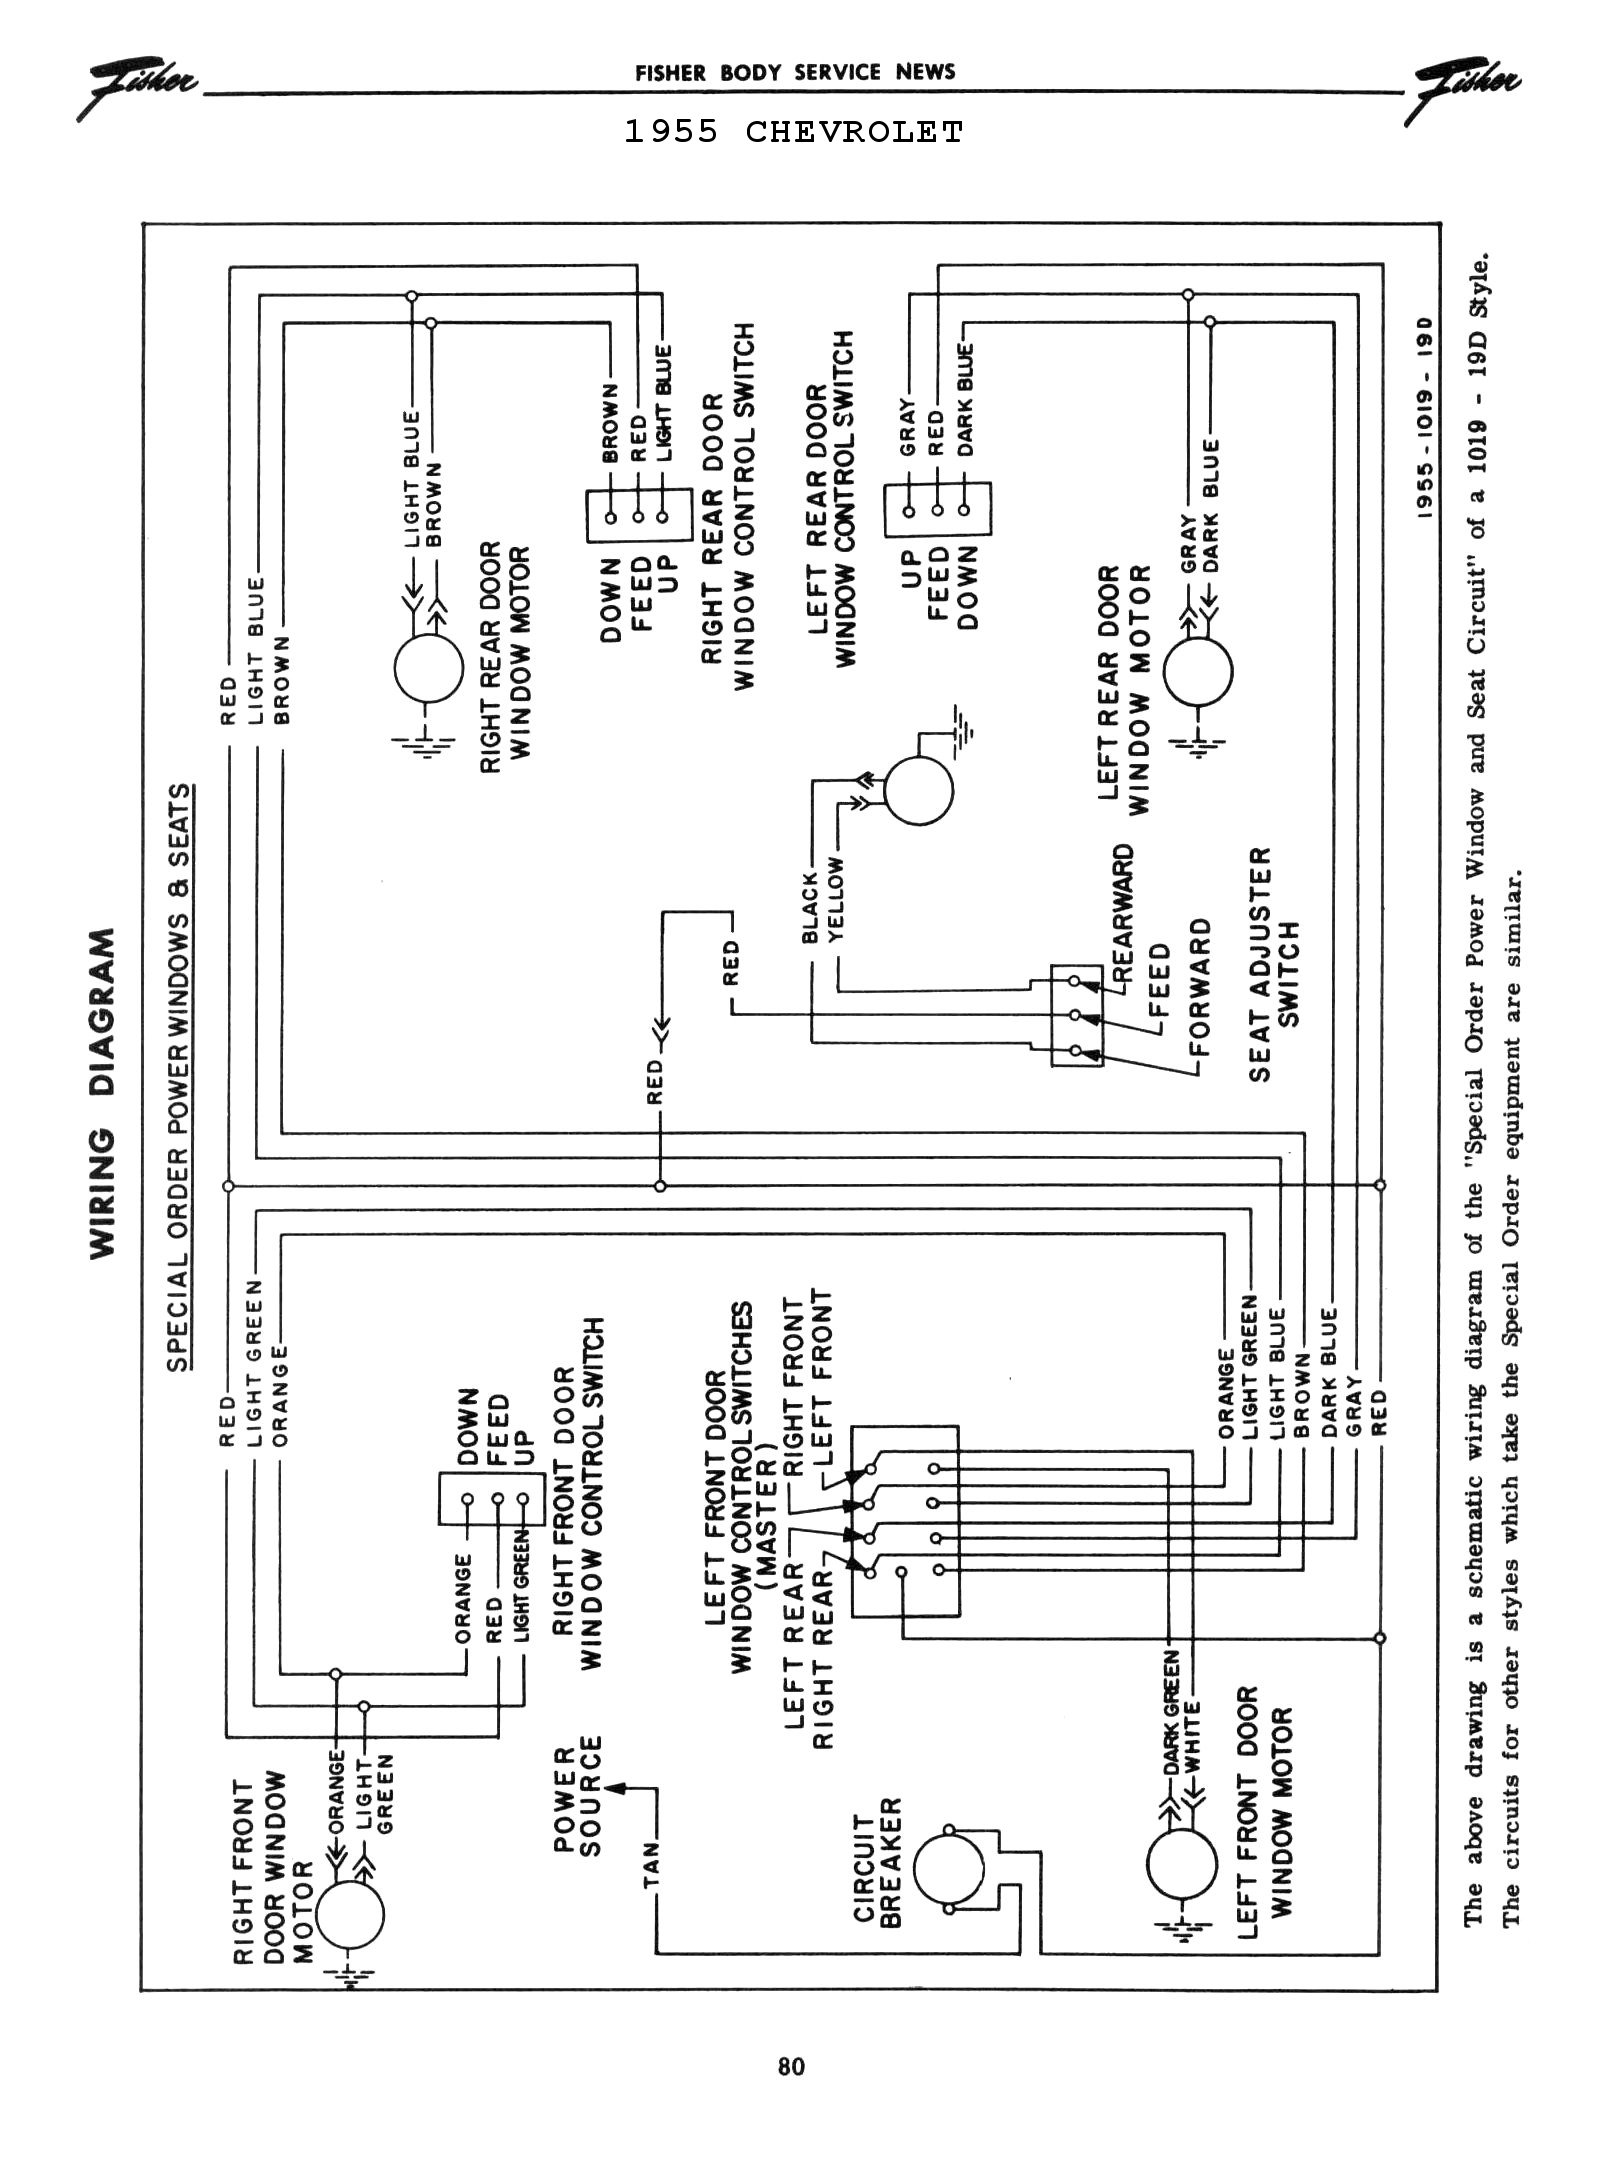 55 chevy truck wiring 55 chevy color wiring diagram trifive 1955 1956 american auto wire harness questions - trifive.com, 1955 chevy 1956 chevy 1957 chevy forum ...